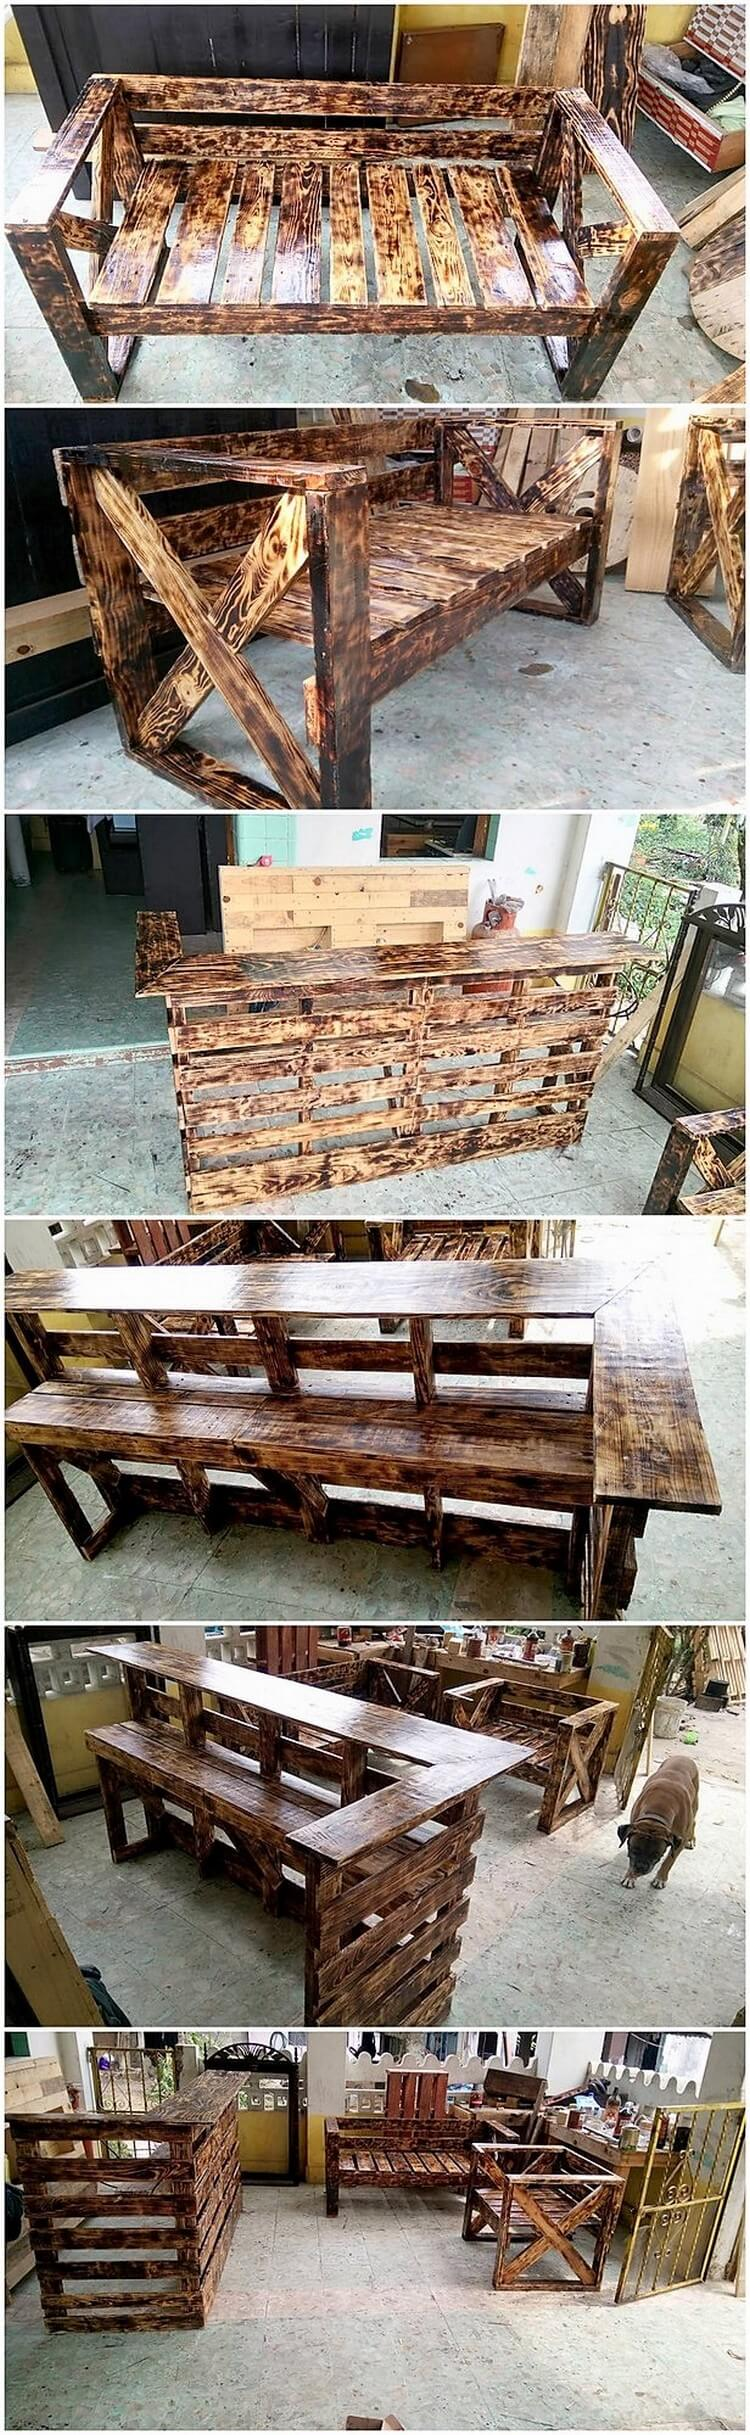 Pallet Furniture and Counter Table